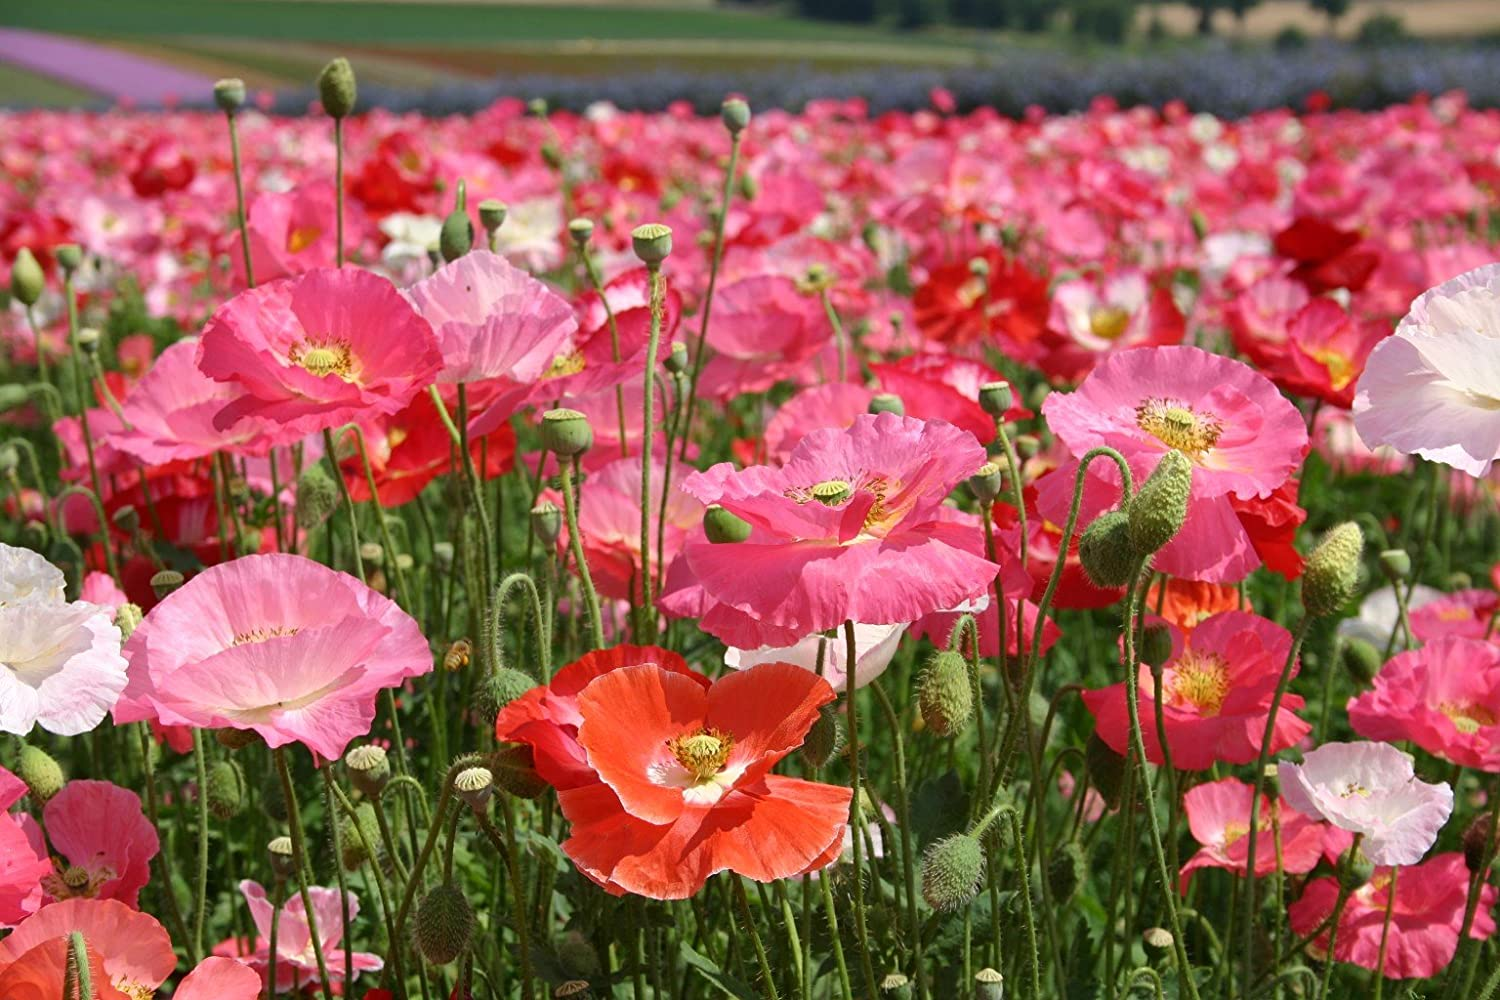 Shirley Single Mix Poppy Flower Seeds, 3000 Heirloom Flower Seeds Per Packet, Non GMO Seeds